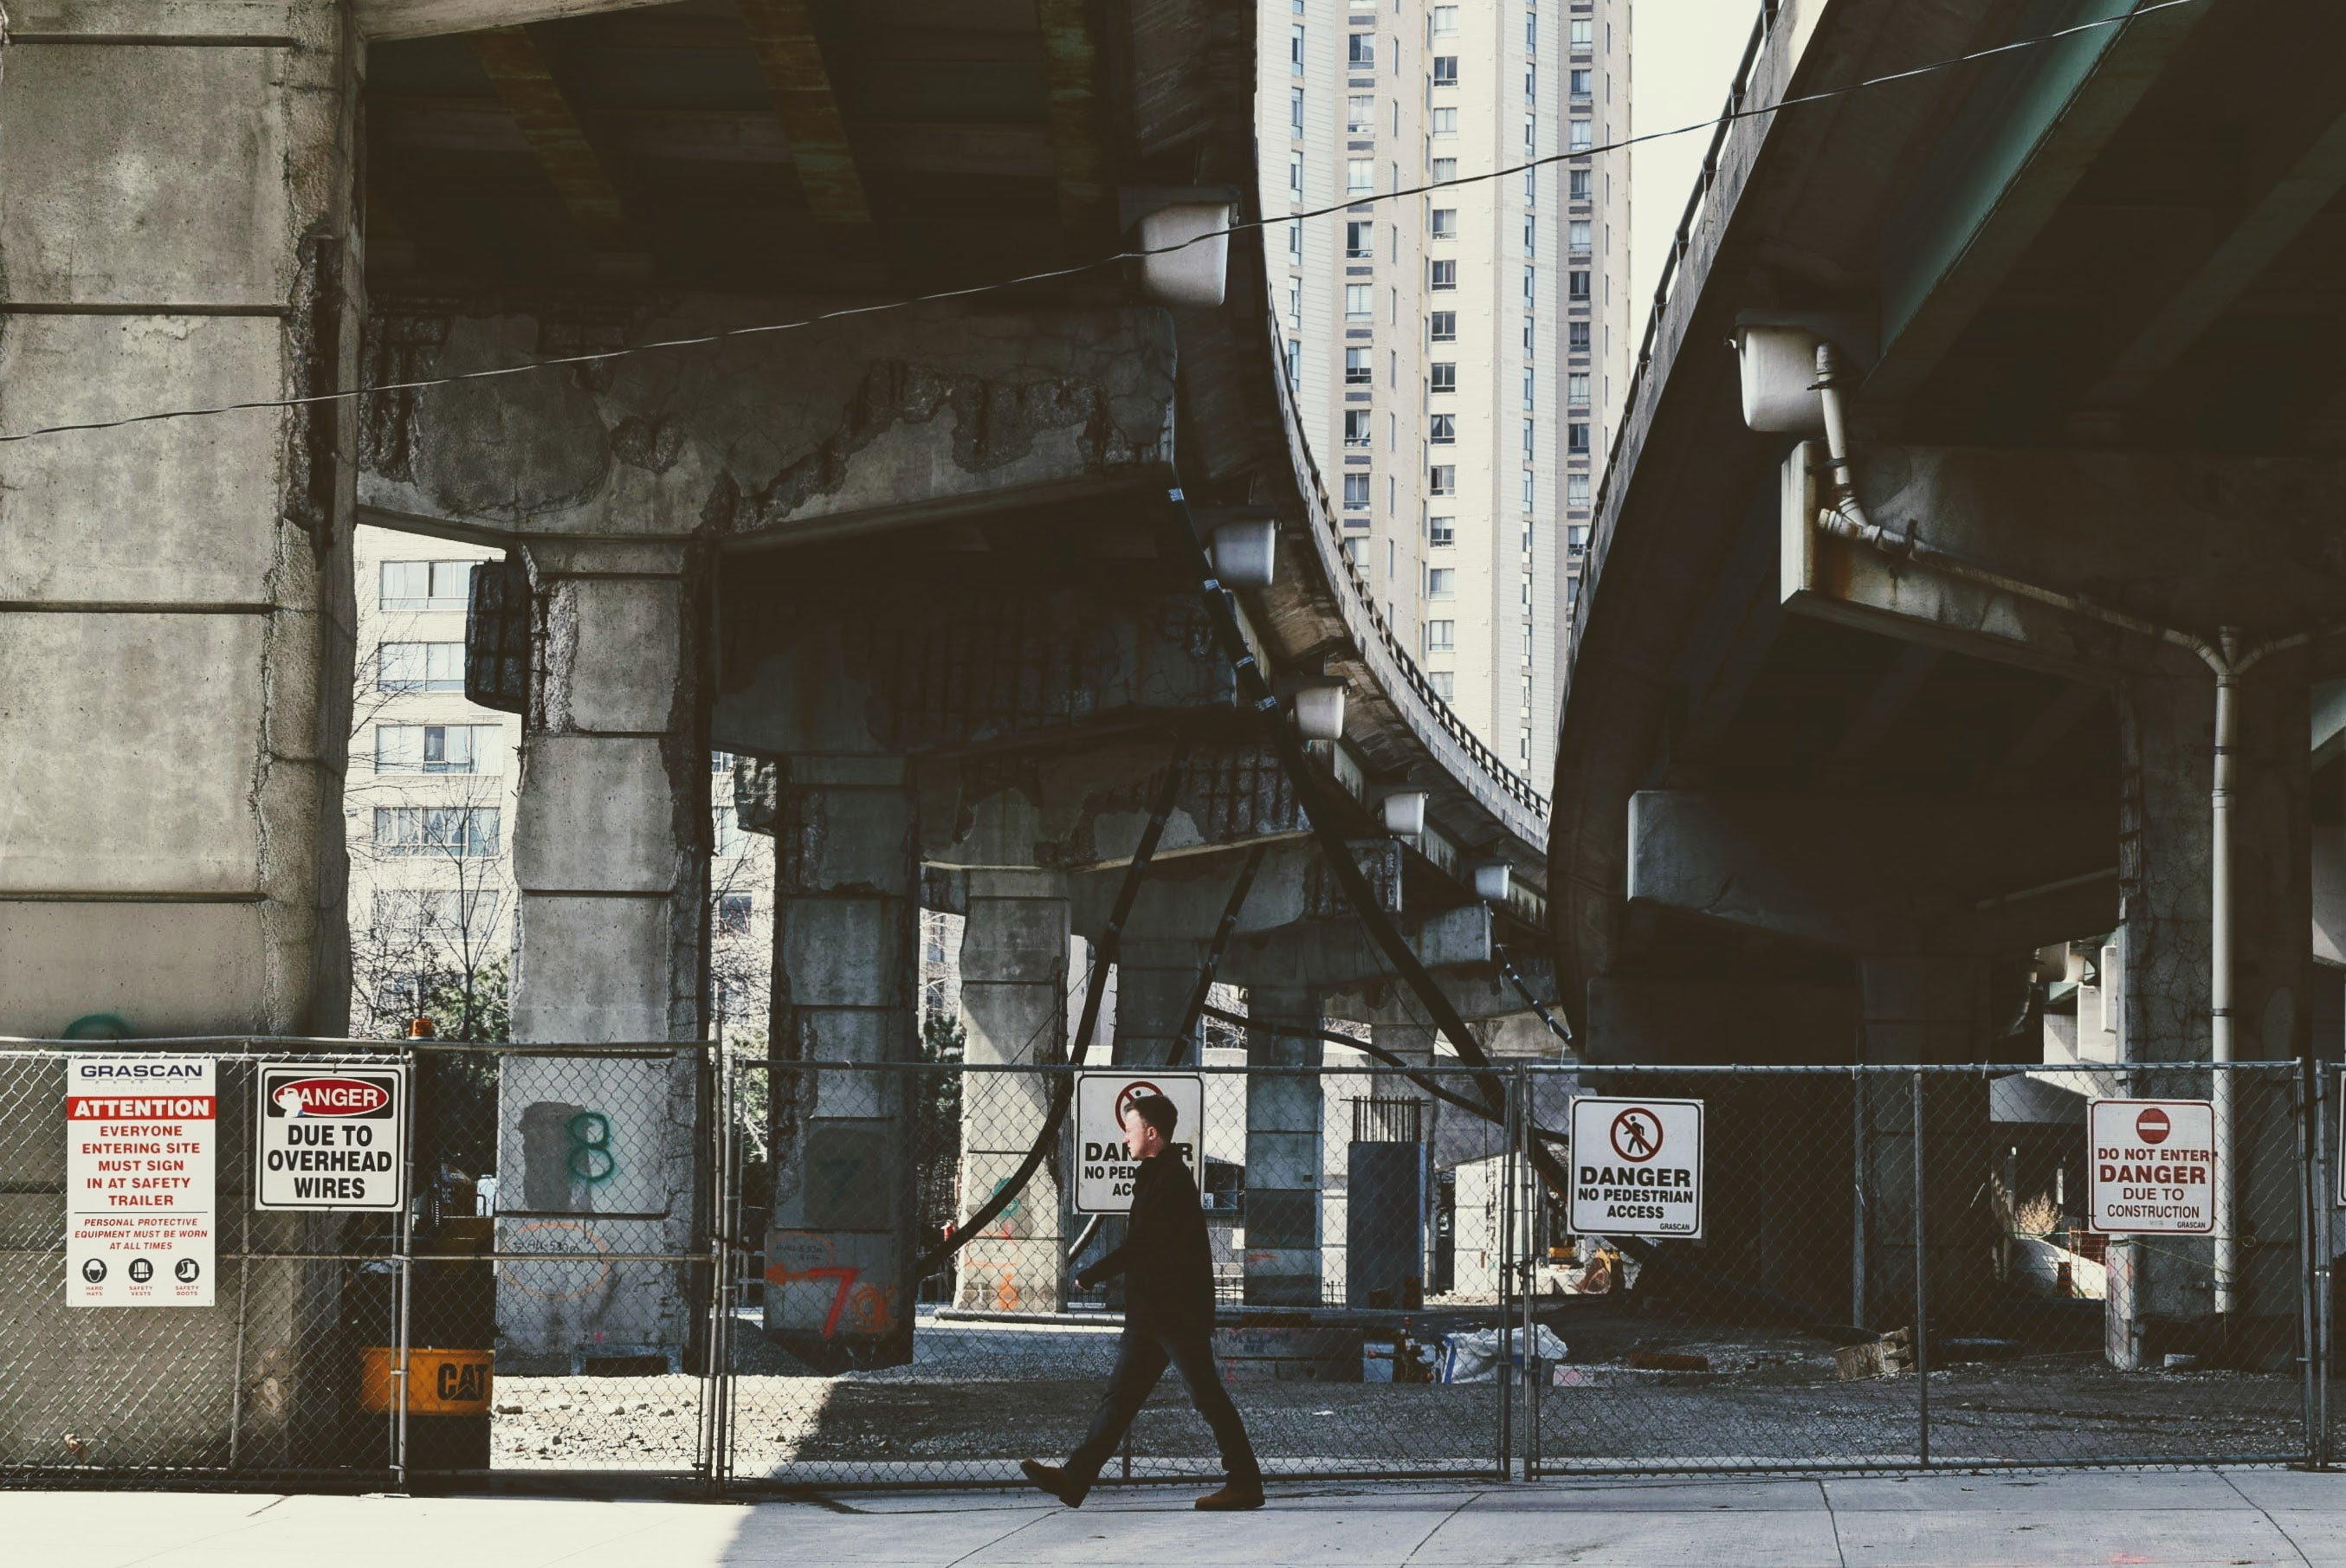 A man walks underneath the overpass along a fenced off area with danger signs.